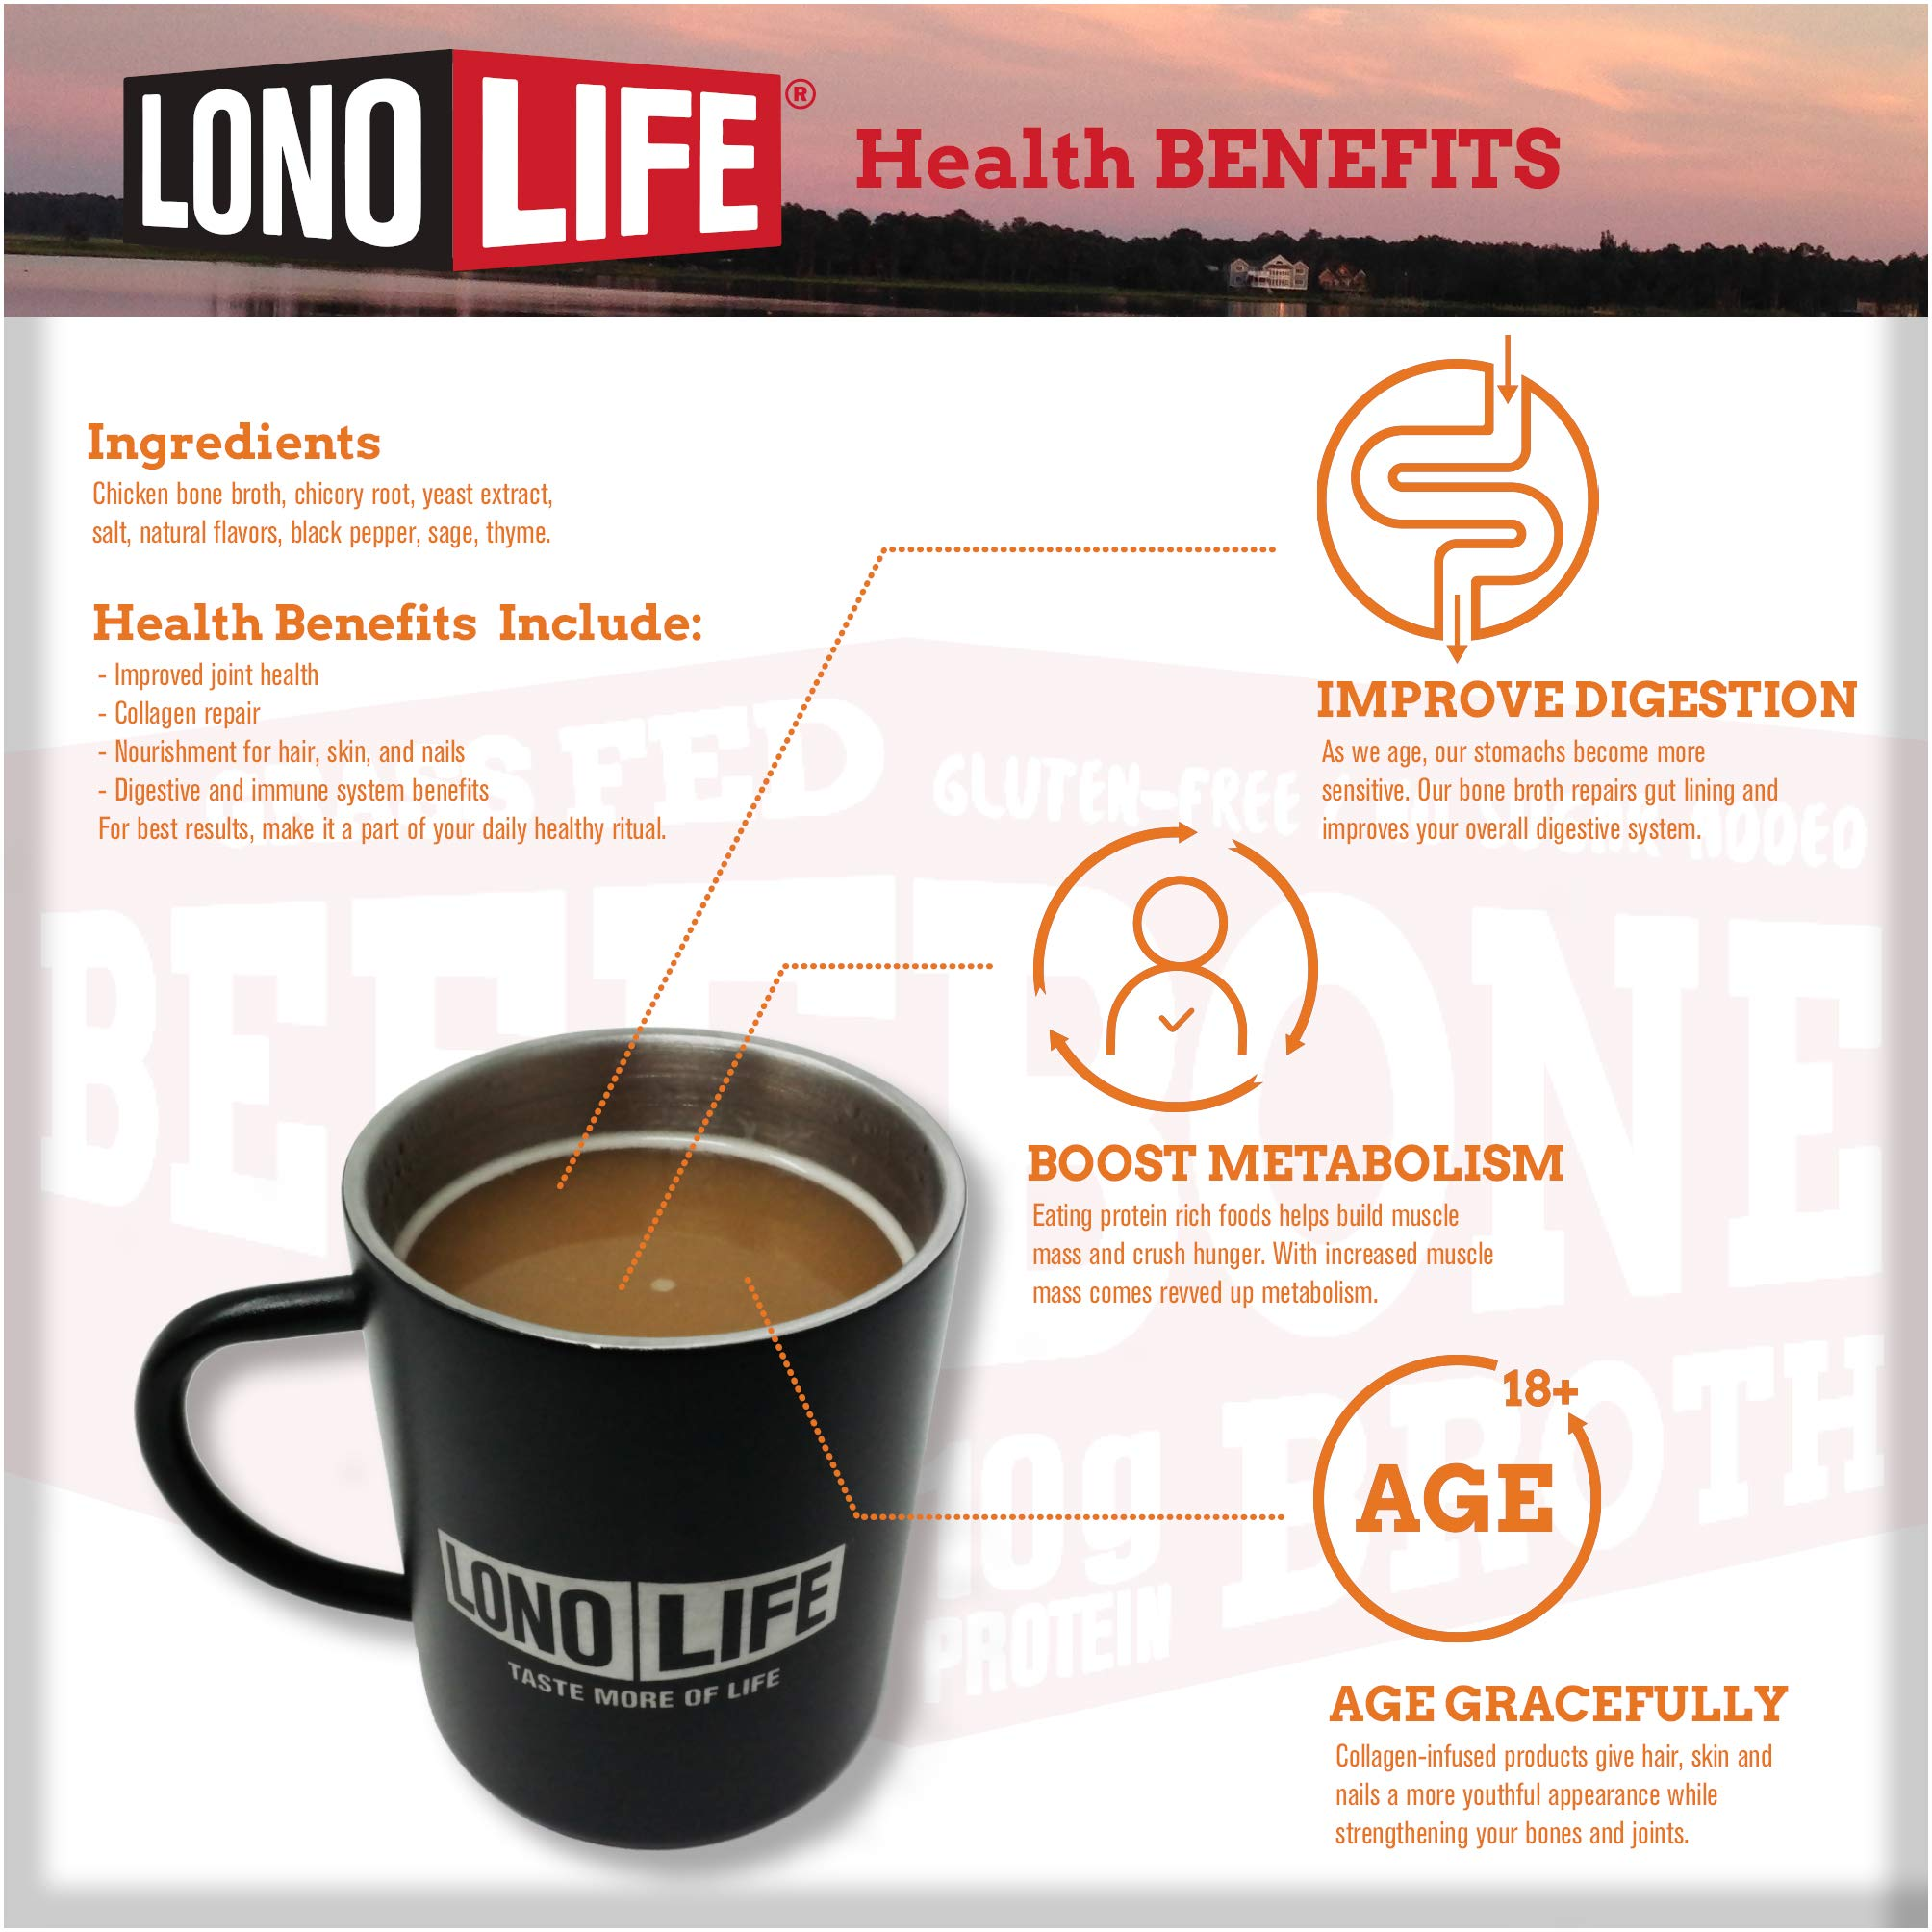 LonoLife Chicken Bone Broth Powder with 10g Protein, Stick Packs, 10 Count by LonoLife (Image #3)